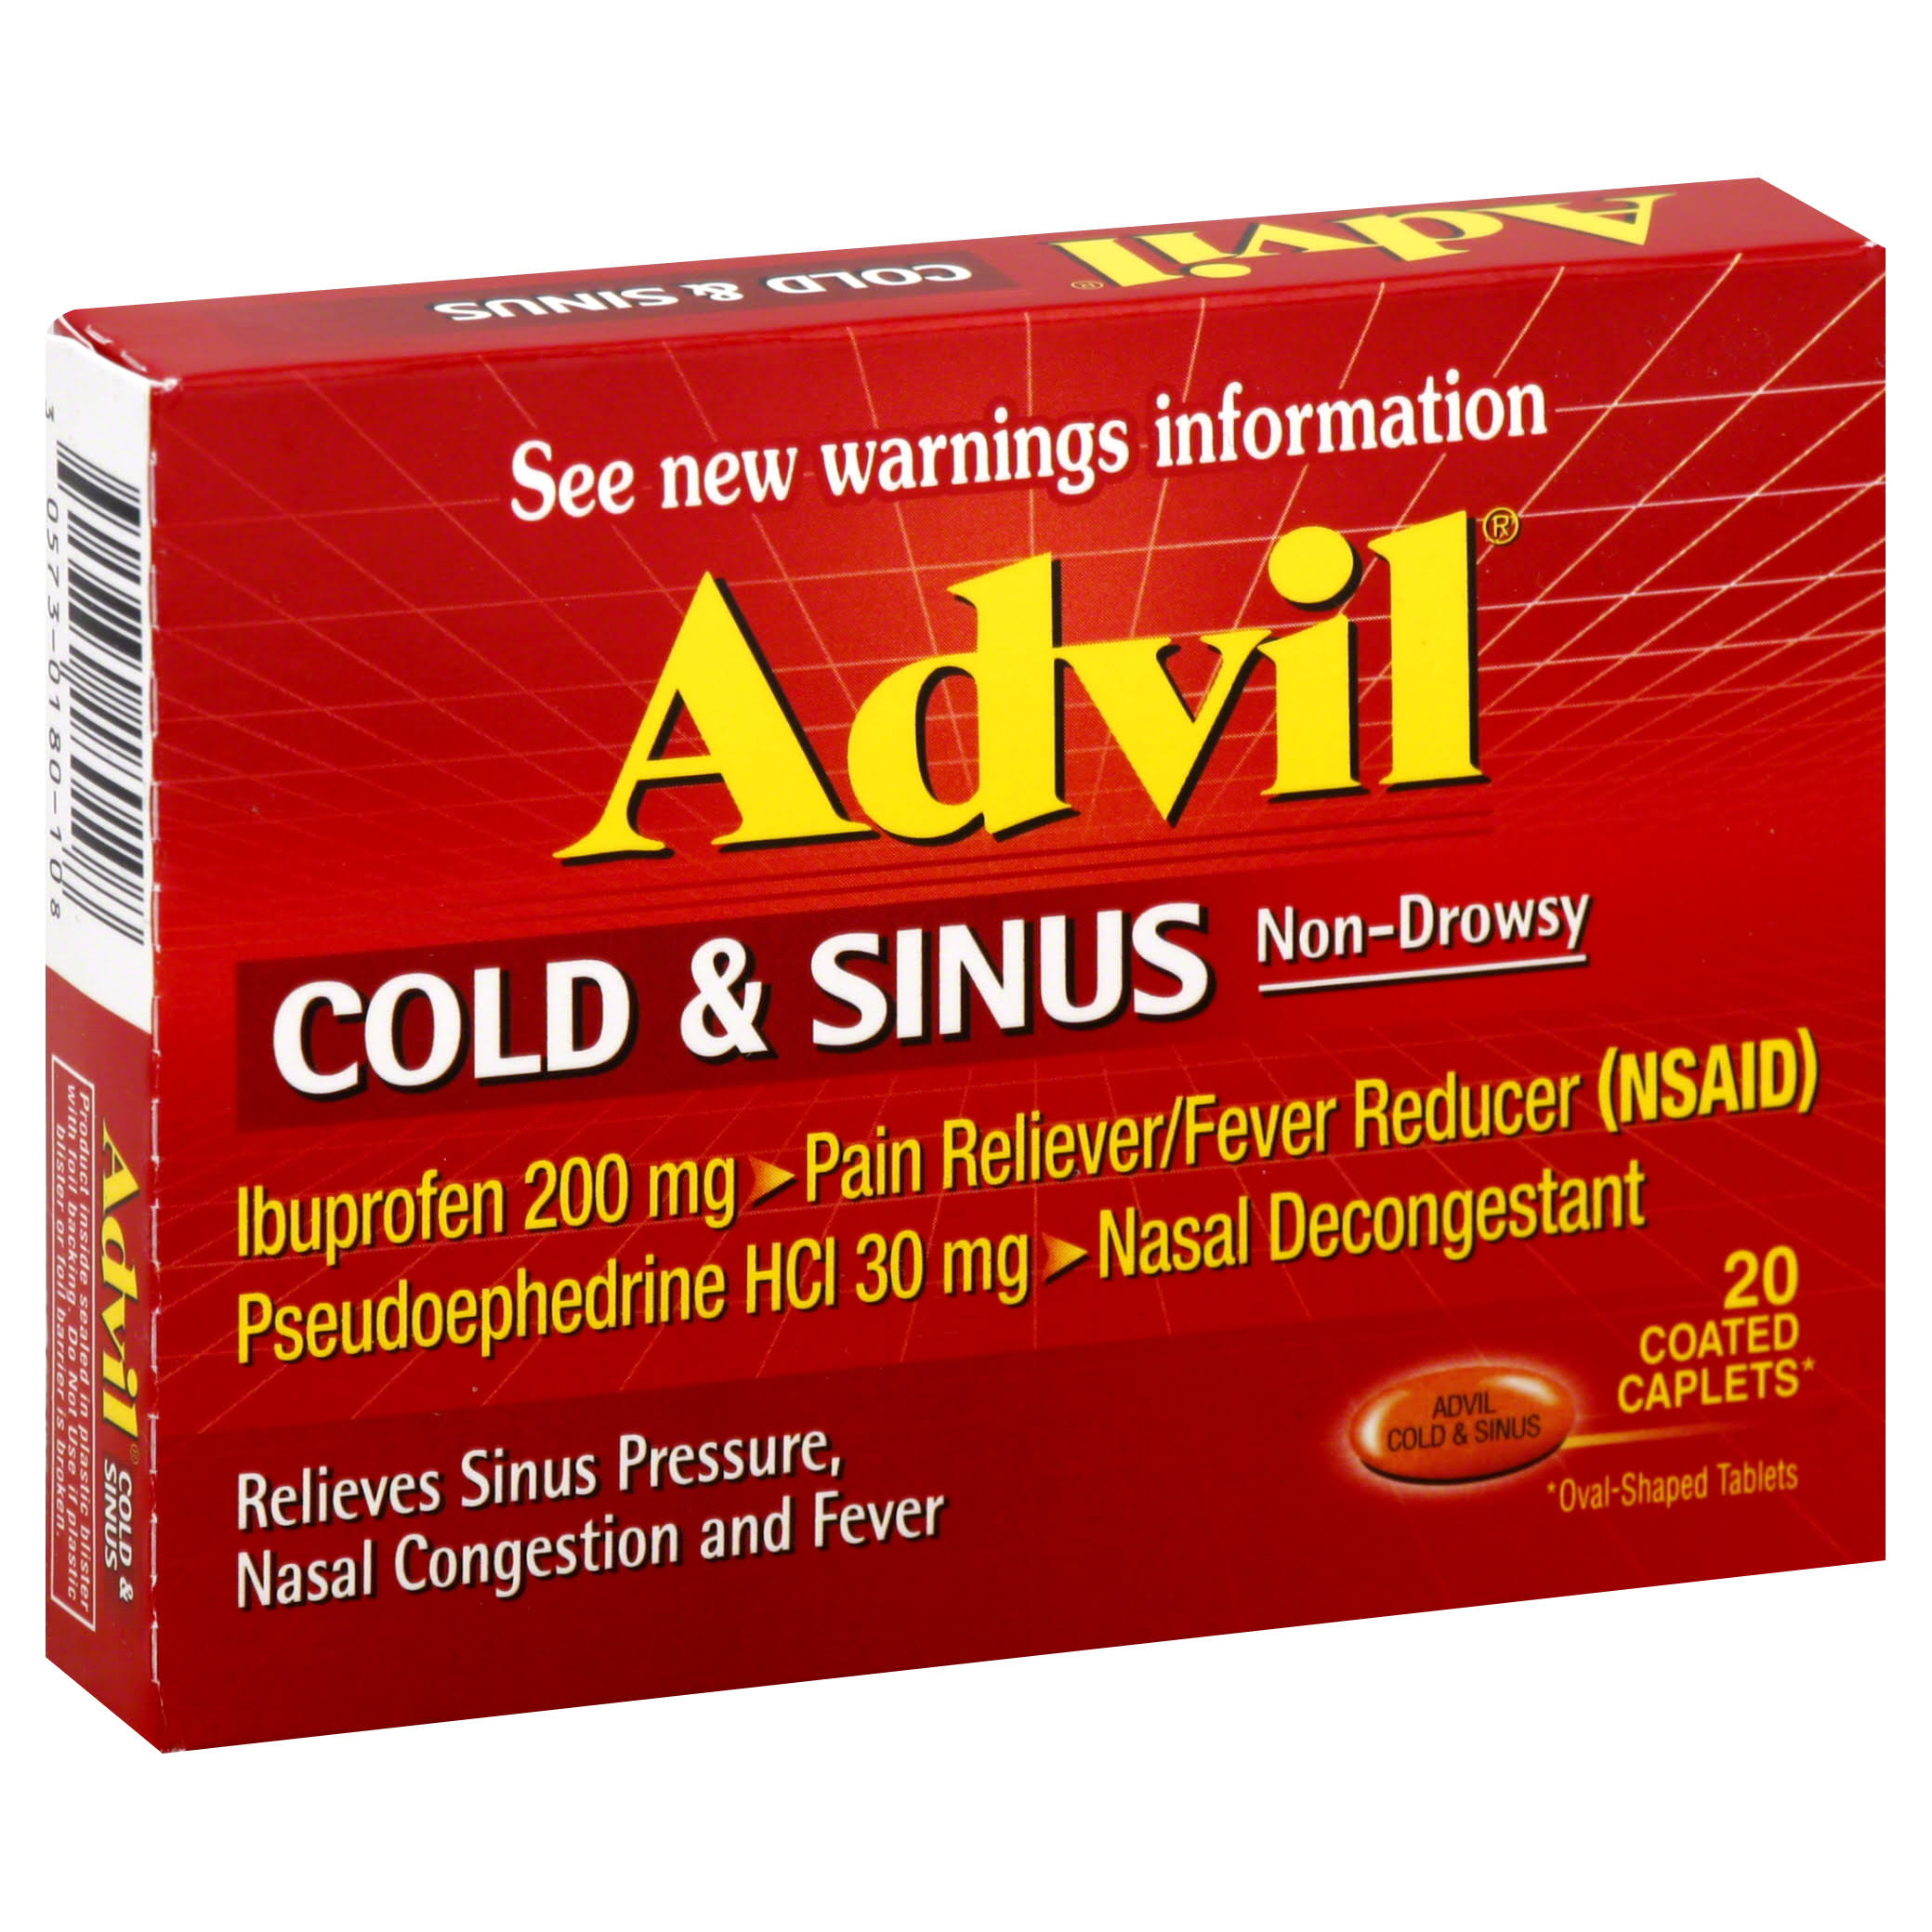 Advil Cold & Sinus Non-Drowsy Coated Caplets - 20 Caplets